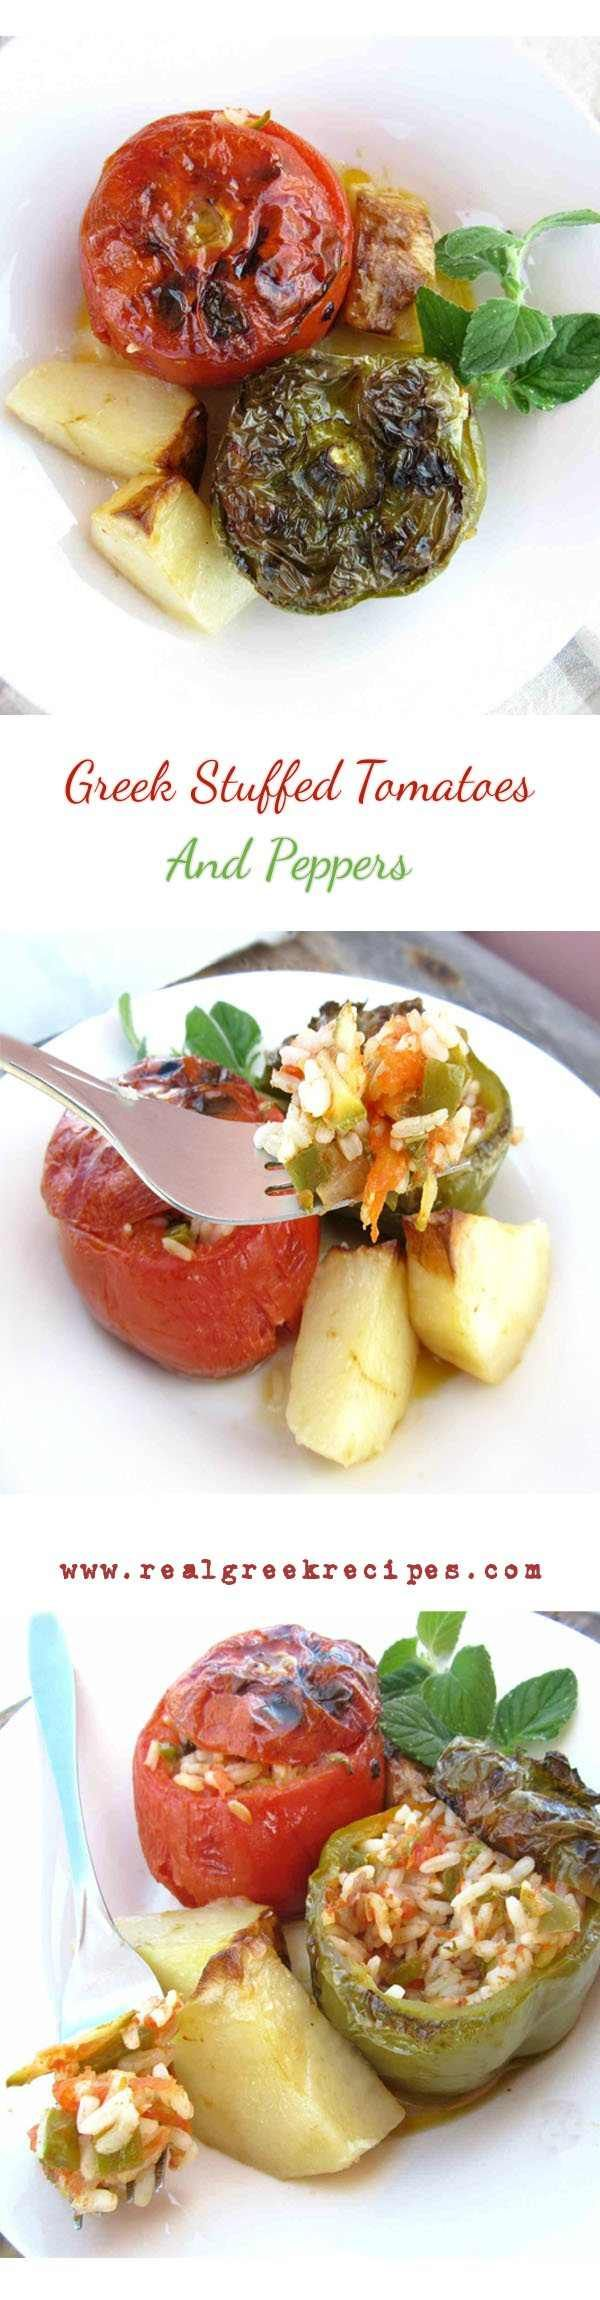 Greek Stuffed Tomatoes And Peppers, is a high-flavored summer dish. Mature sweetish tomatoes and peppers are filled, with a rice and fresh vegetable mix that gets slowly cooked in the oven. This way the rice becomes so moist and tasty. Along with a small piece of feta cheese makes a super satisfying meal for vegetarians or a perfect garnish to meat-lovers. #Stuffedtomatoes #Greekfood #ricerecipe #ricefilling